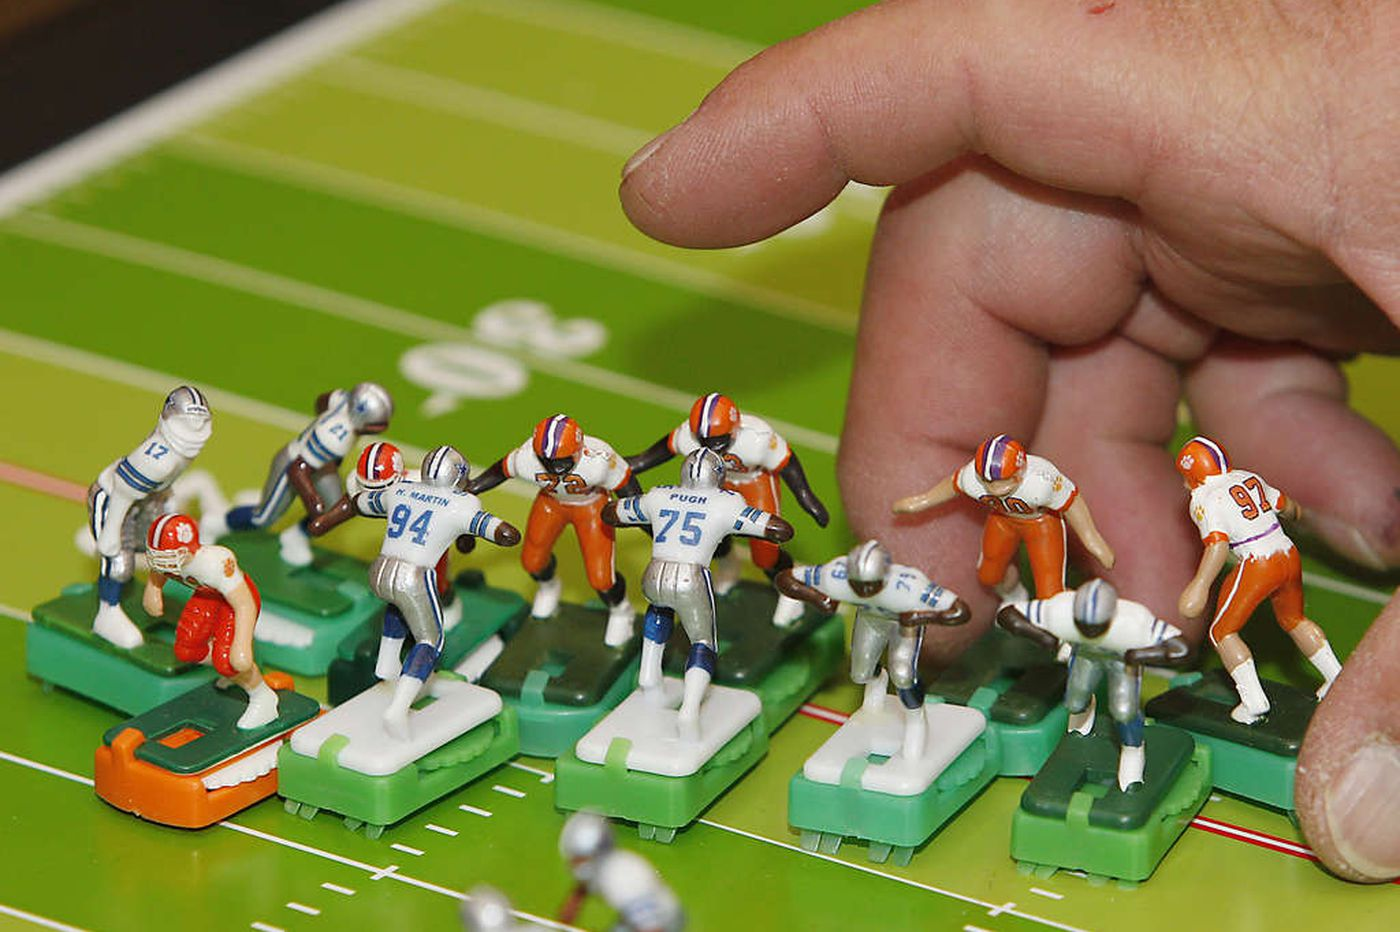 Giving 'Em Fitz: Electric football has a hold on its fans